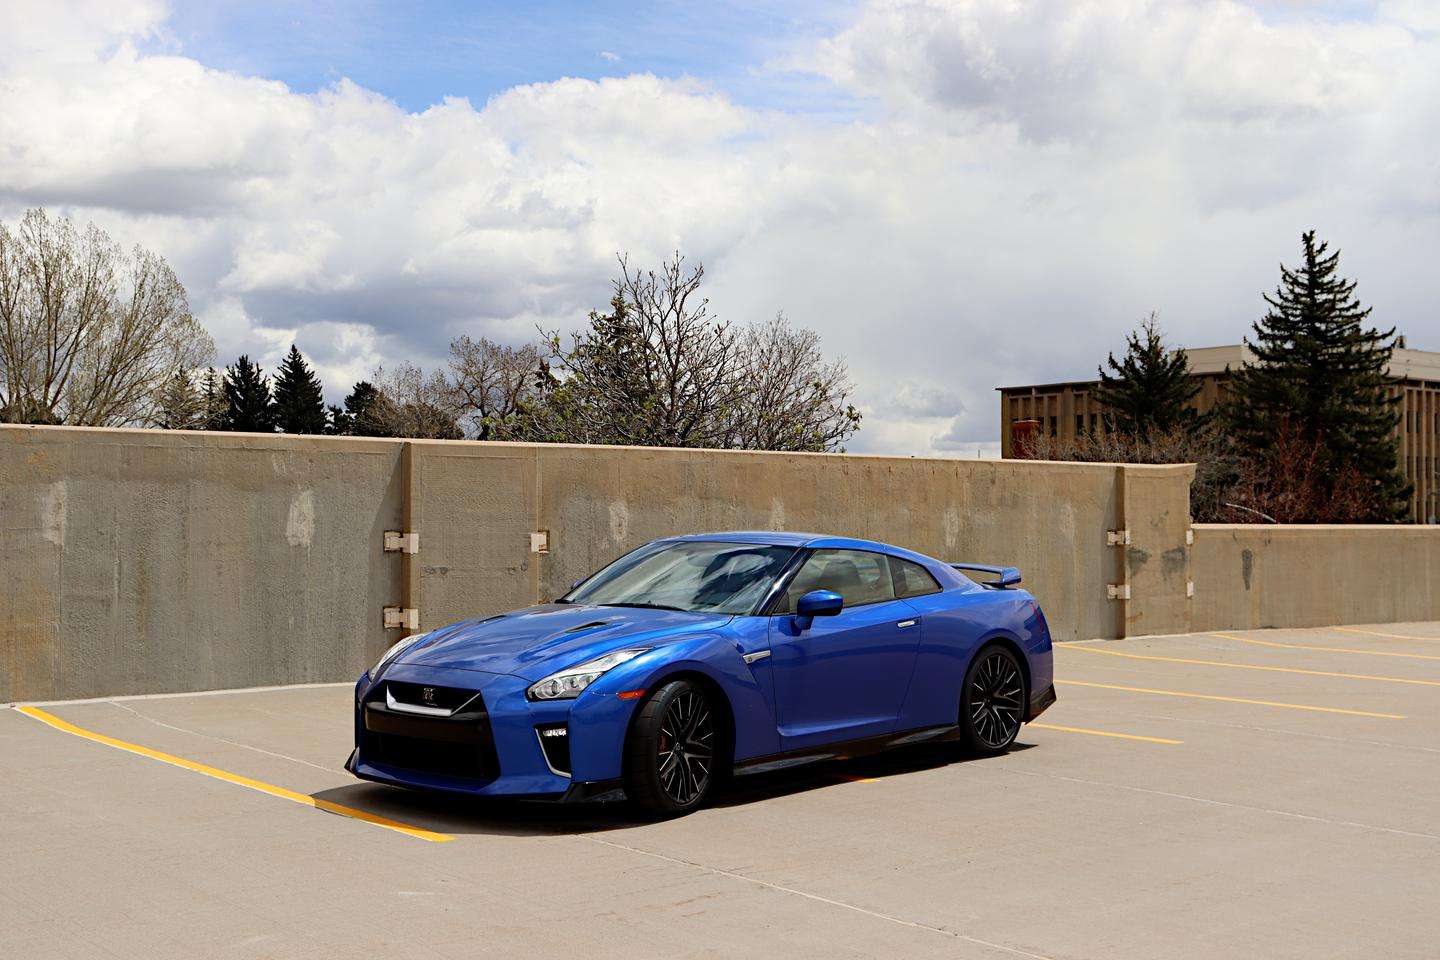 The 2021 Nissan GT-R we drove came in Bayside Blue, a direct throwback to the 1990s GT-R that made this car's name